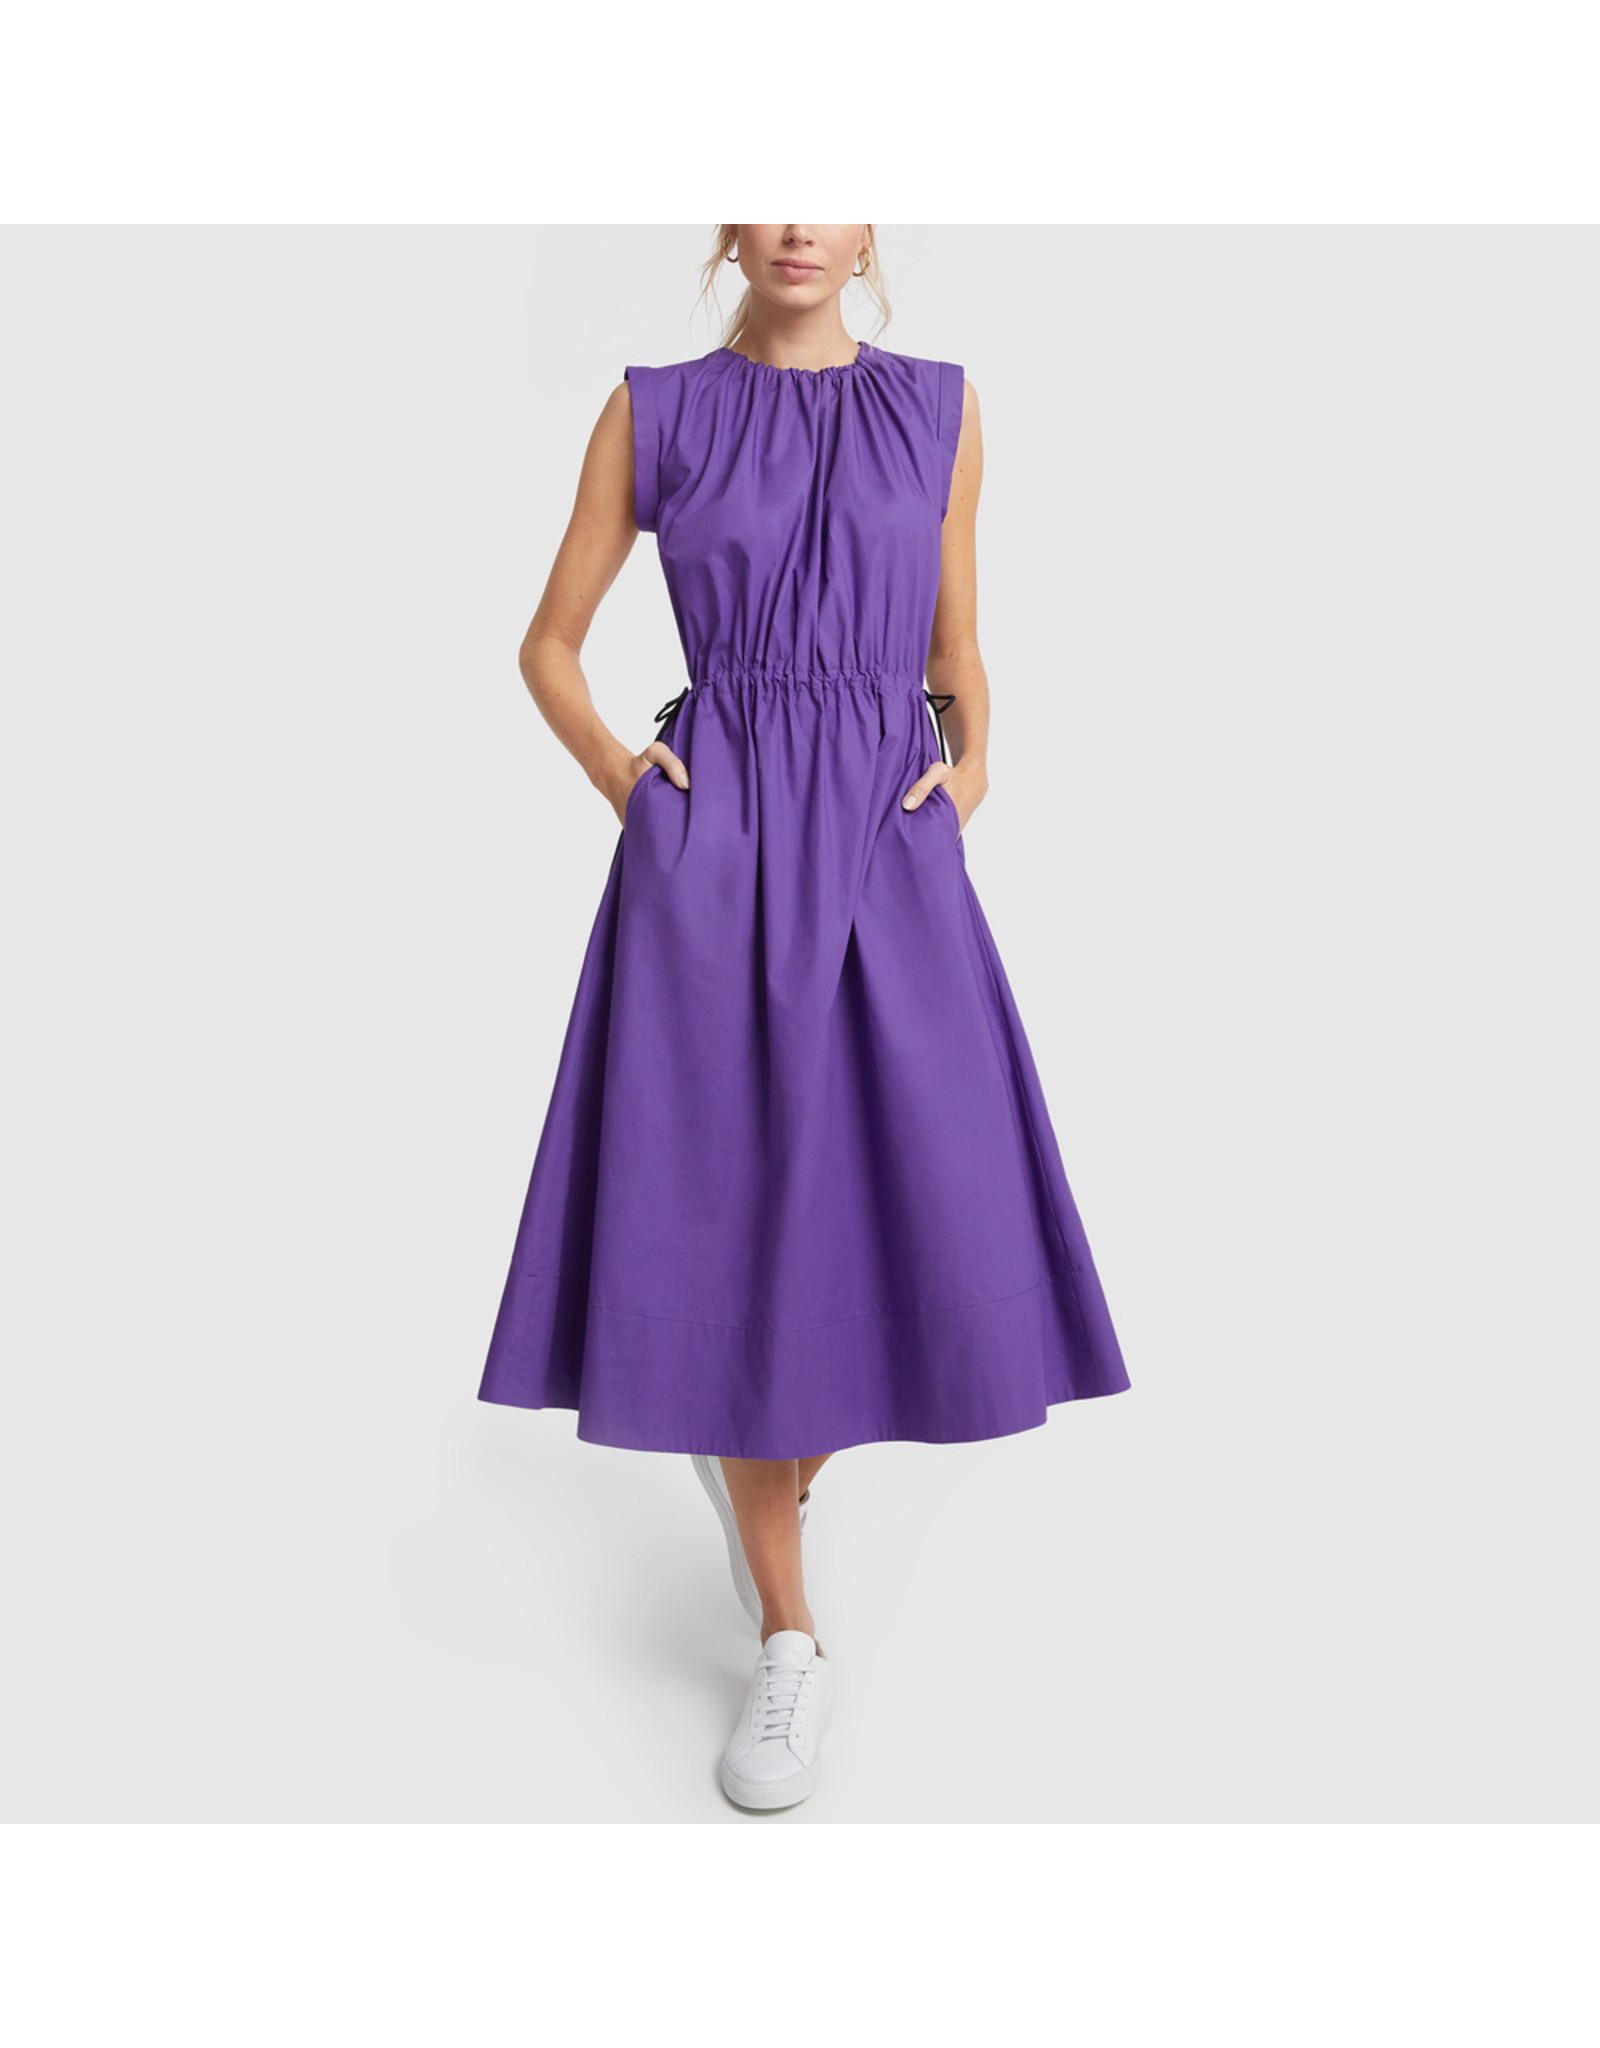 G. Label G. Label Kaci Drawstring Shirtdress (Size: 6, Color: Purple)